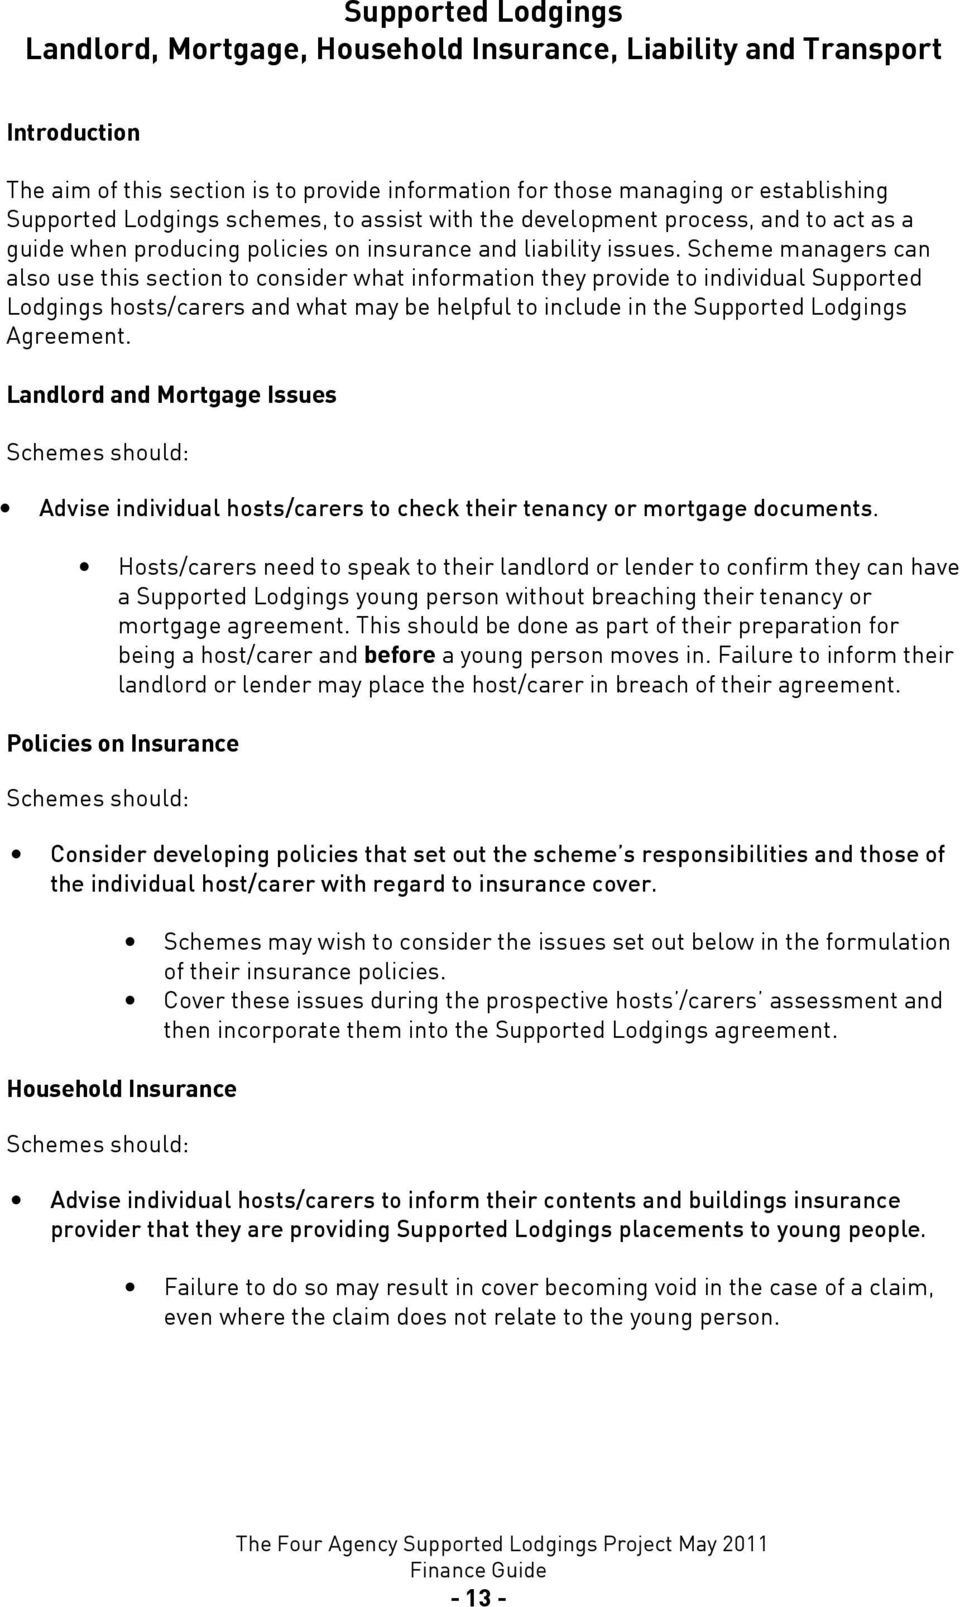 Scheme managers can also use this section to consider what information they provide to individual Supported Lodgings hosts/carers and what may be helpful to include in the Supported Lodgings